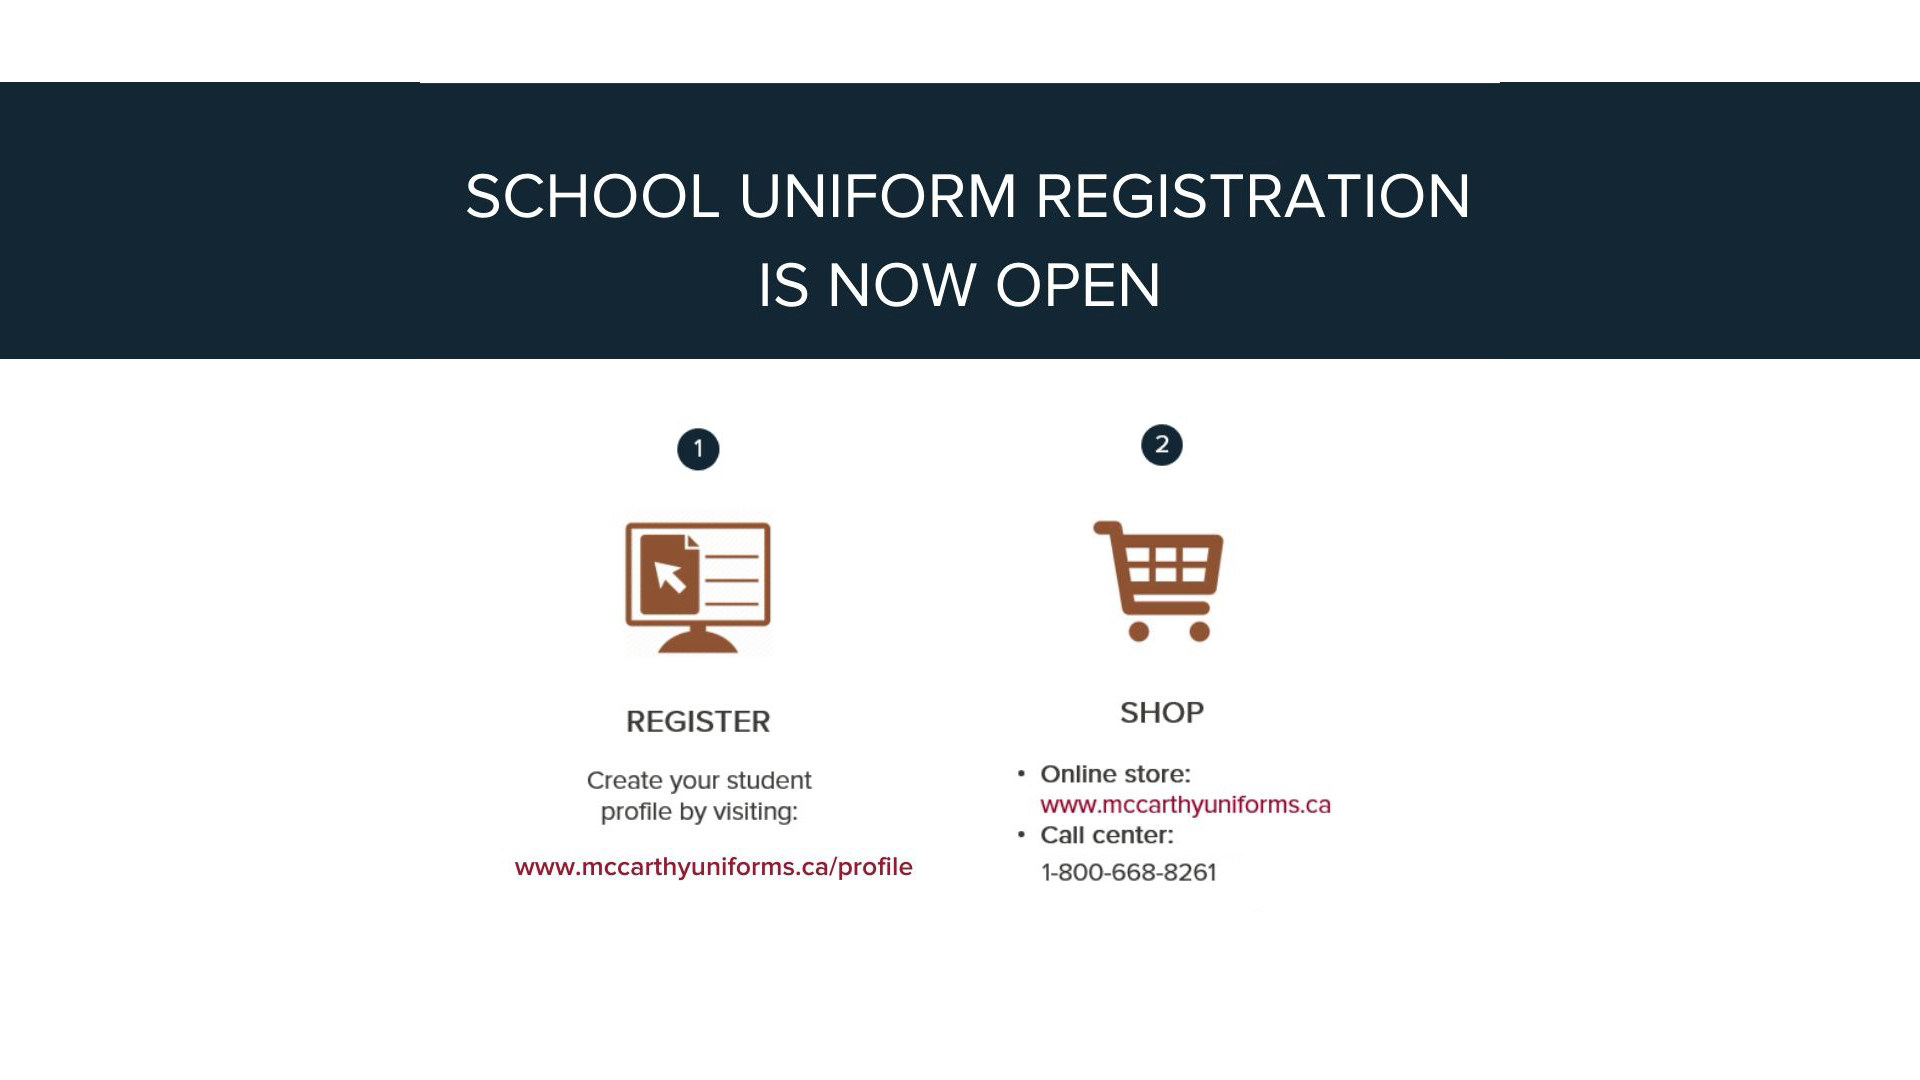 uniformregistration.jpg